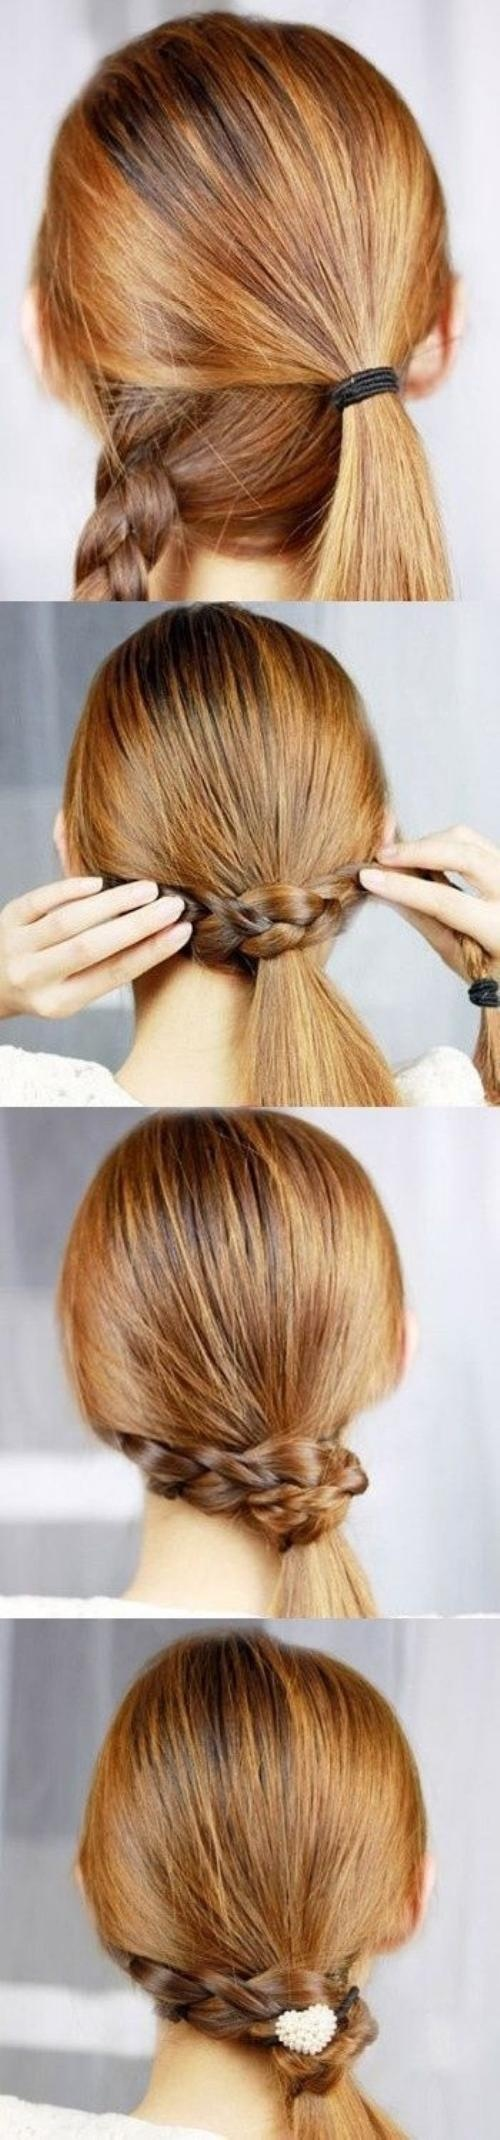 How To French Braid Hair Step By Step Instructions €� Images Free How To Braid  Hair